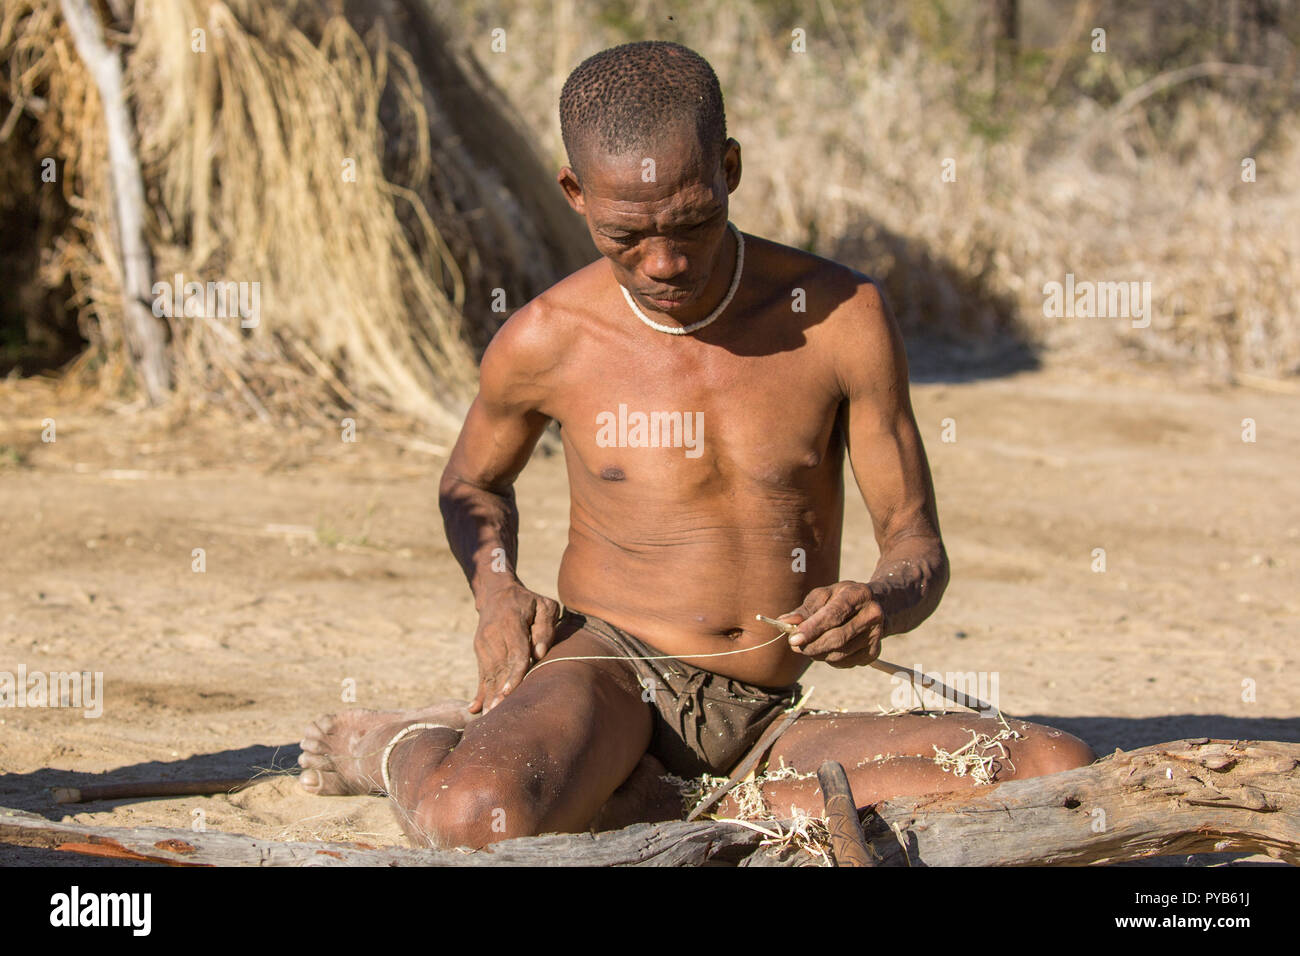 A group of Bushmen preparing bows and arrows for hunting. Photographed in Namibia - Stock Image